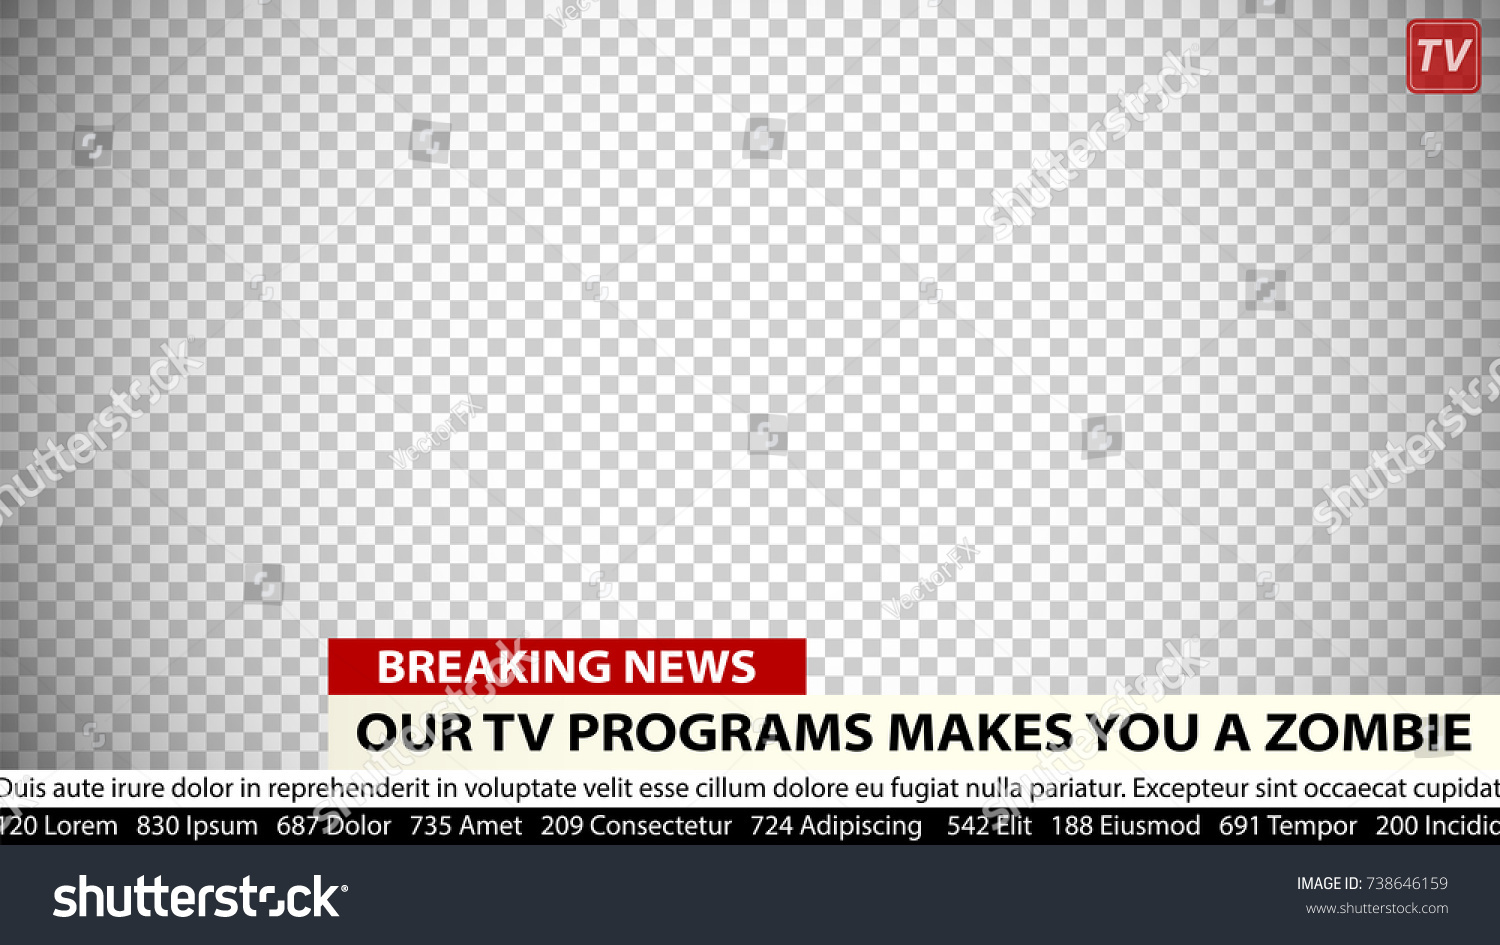 Empty Tv News Headline Template Wiring Diagrams Row Field Scanning Basiccircuit Circuit Diagram Seekiccom Breaking Vector Business Communication Stock Rh Shutterstock Com Newspaper Fill In